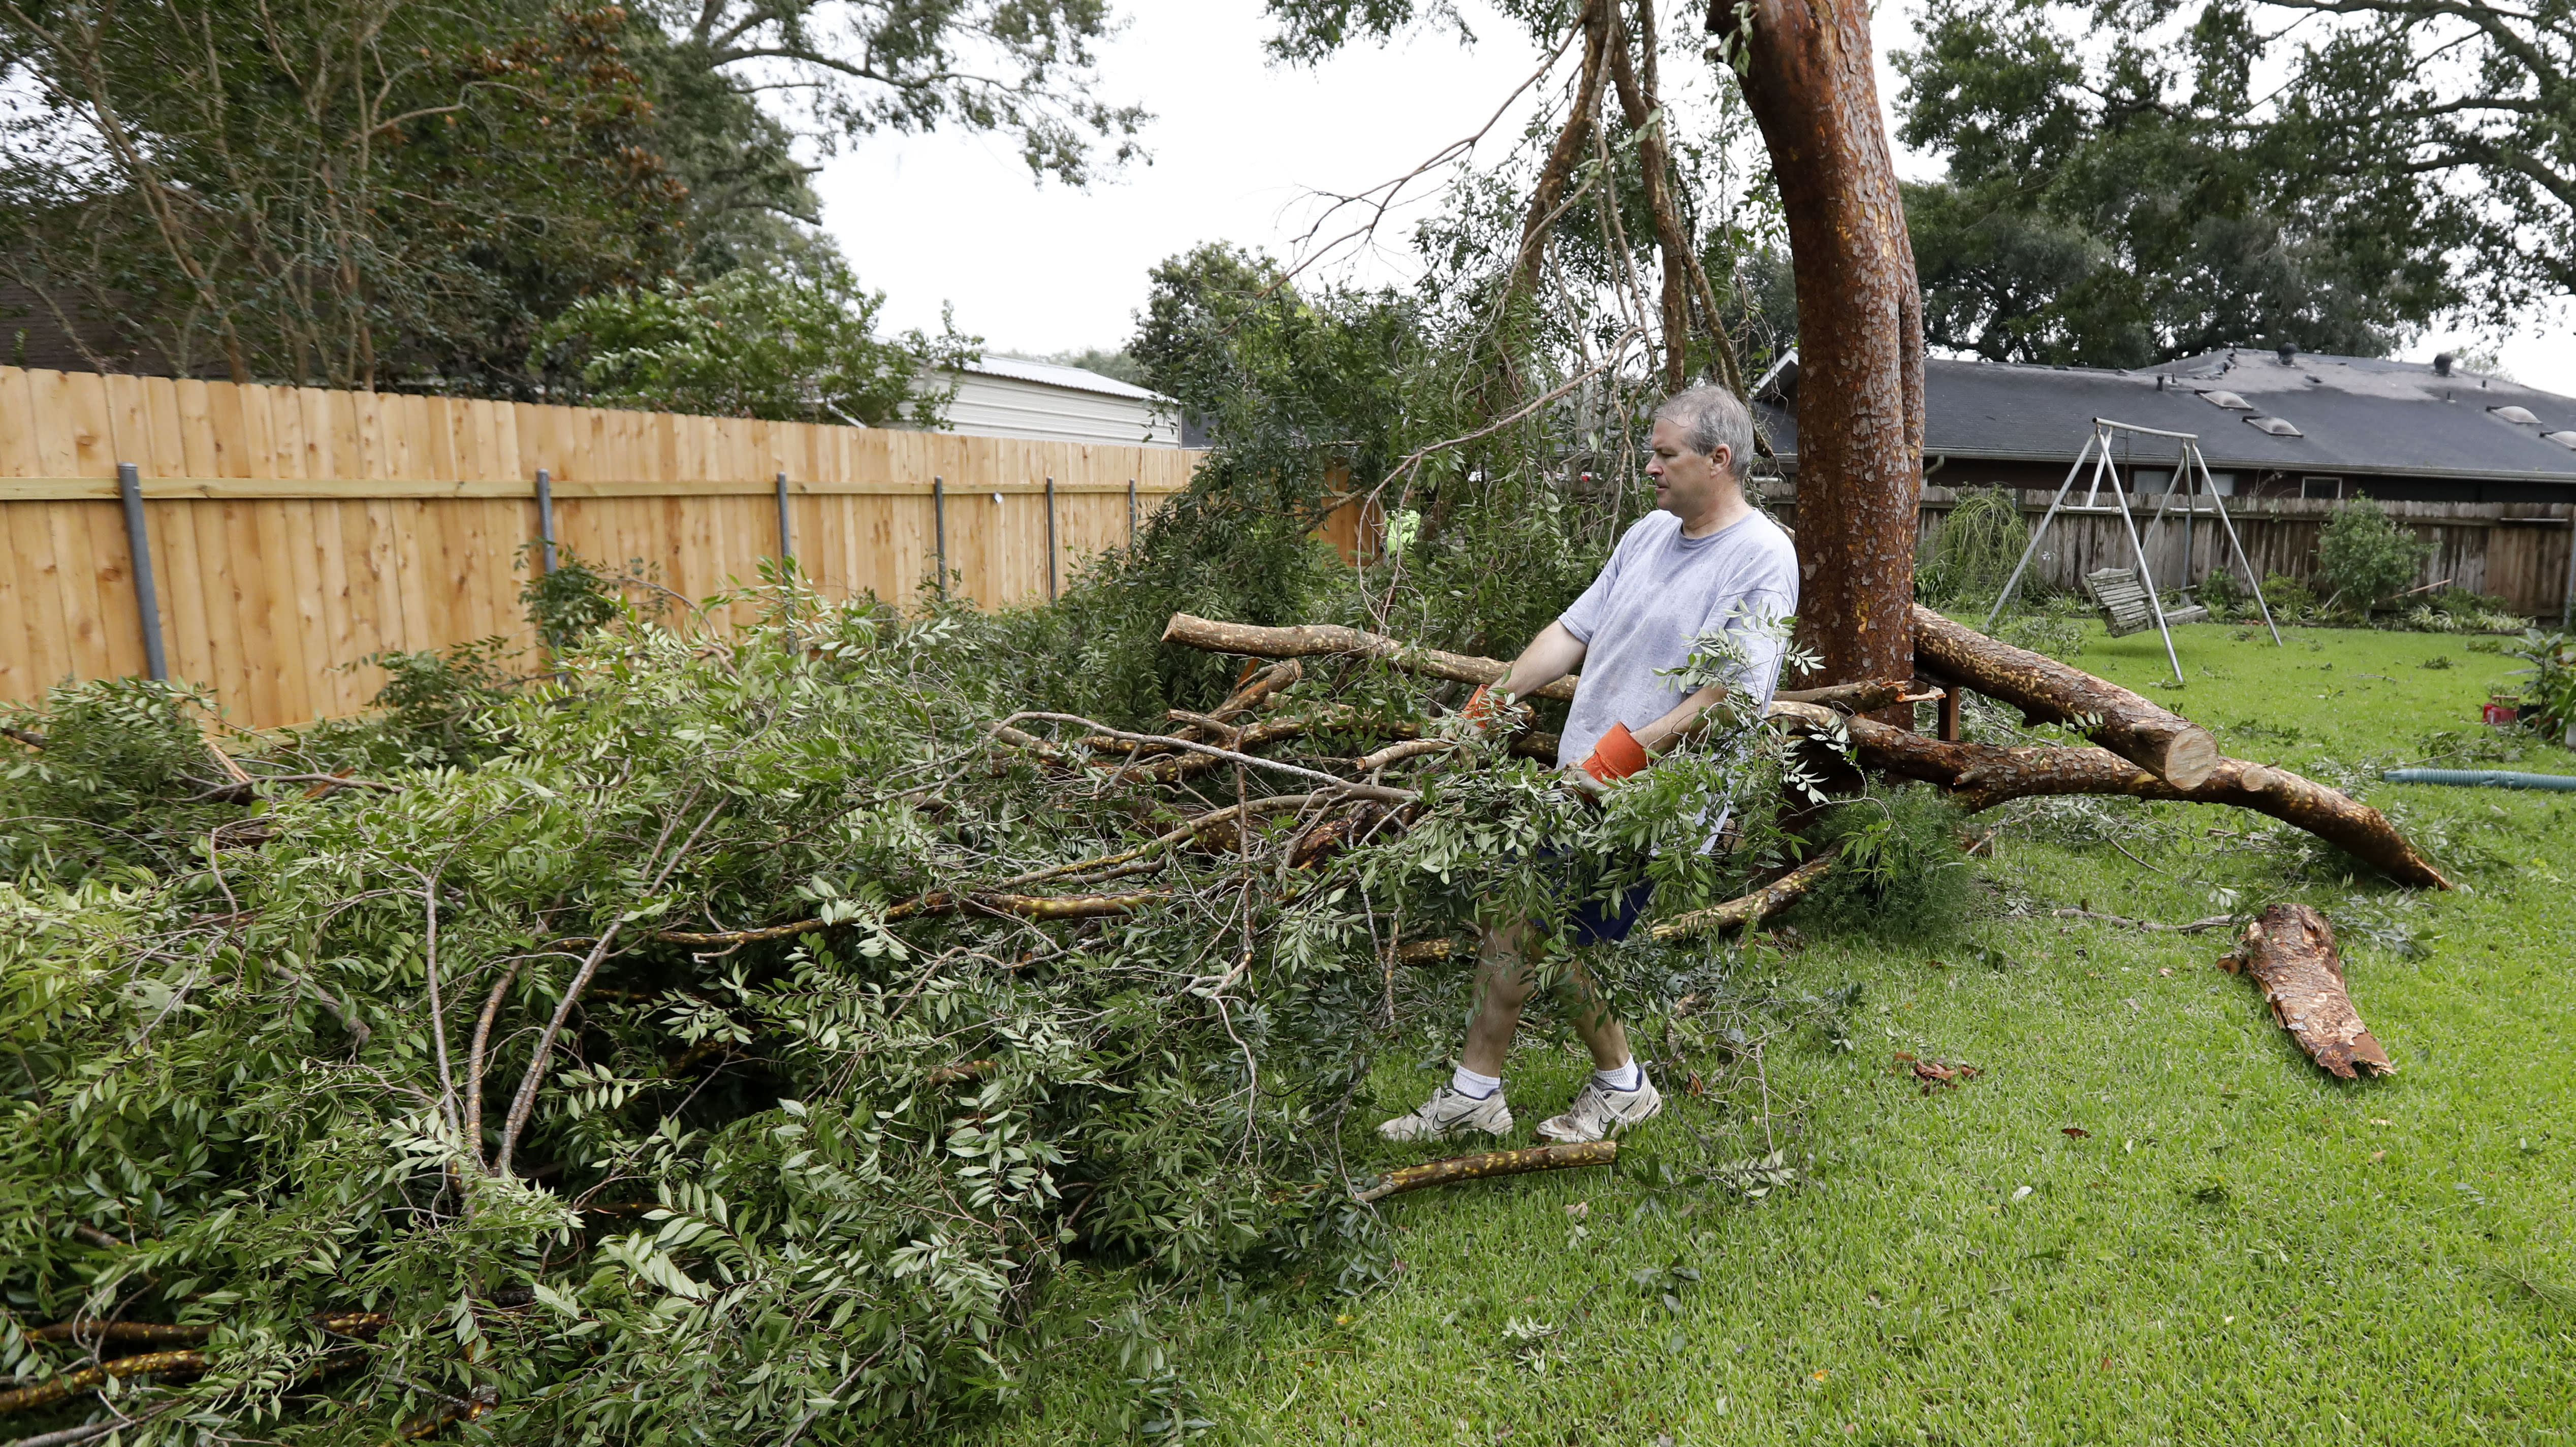 The Latest: Louisiana governor 'grateful' storm wasn't worse